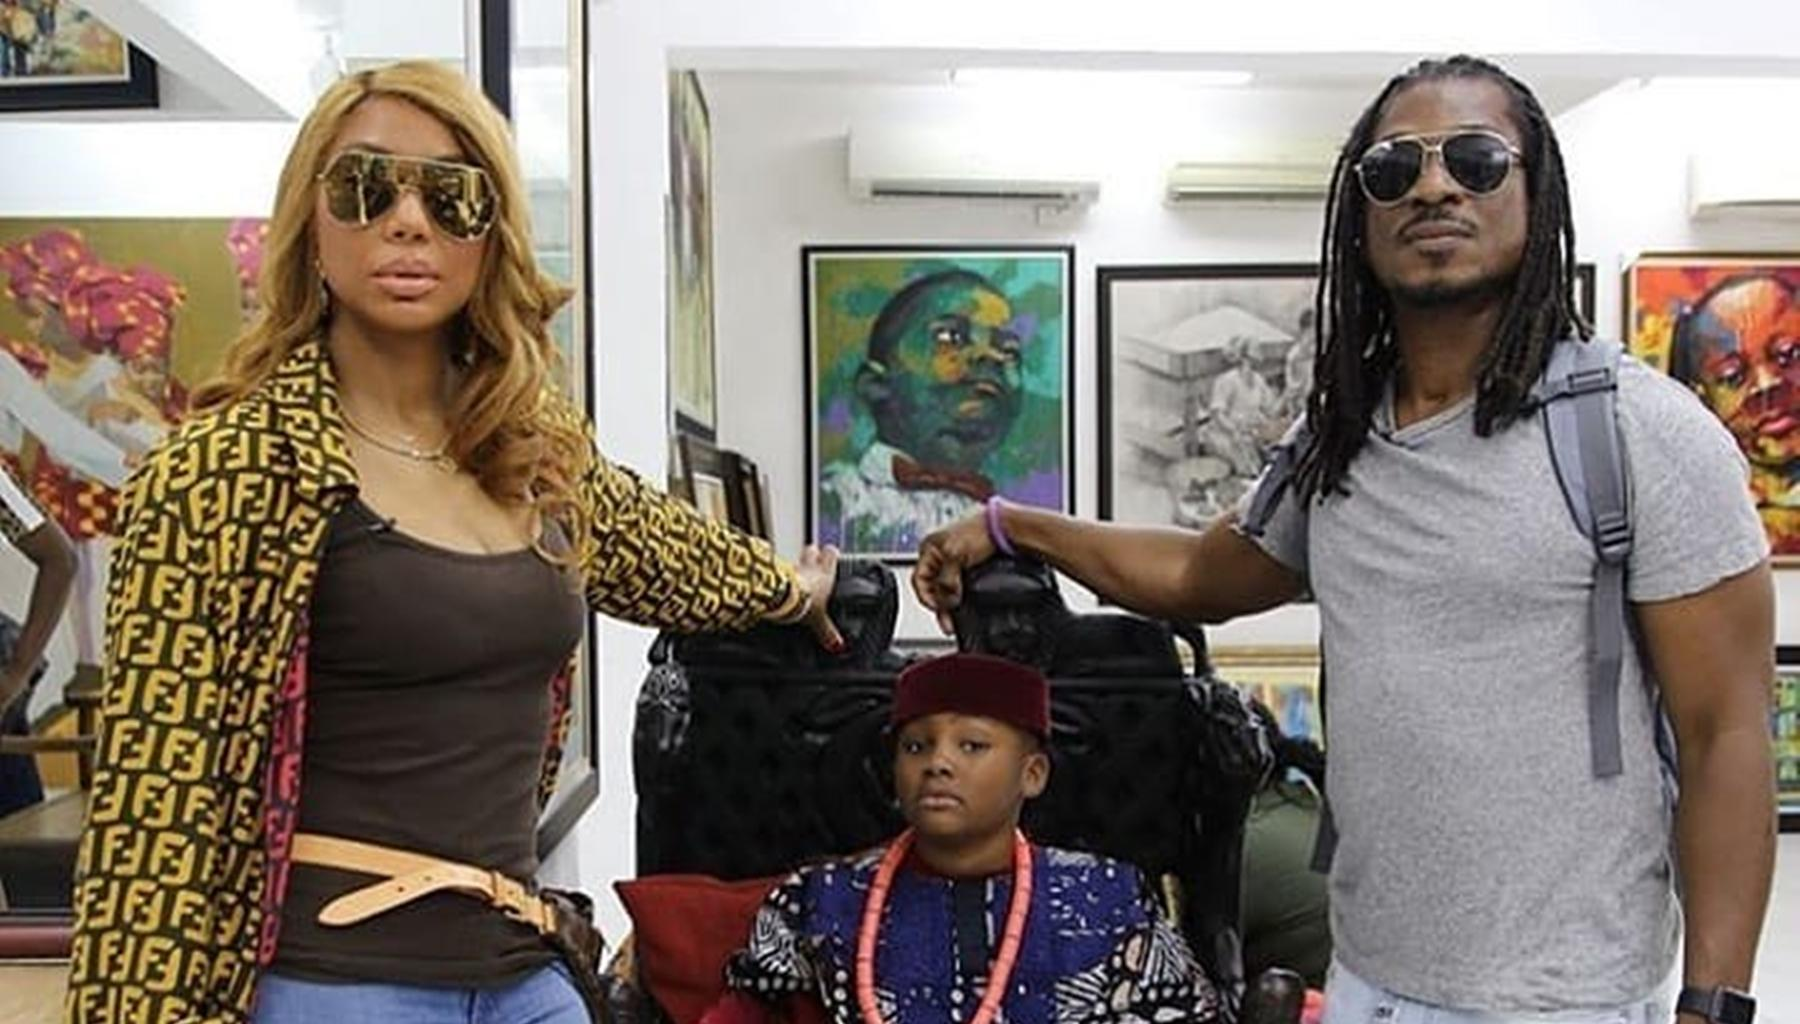 Tamar Braxton's BF, David Adefeso, Shares Tons Of New Pictures From Their Nigeria Vacation And Explains Why They Were Warned Not To Go There